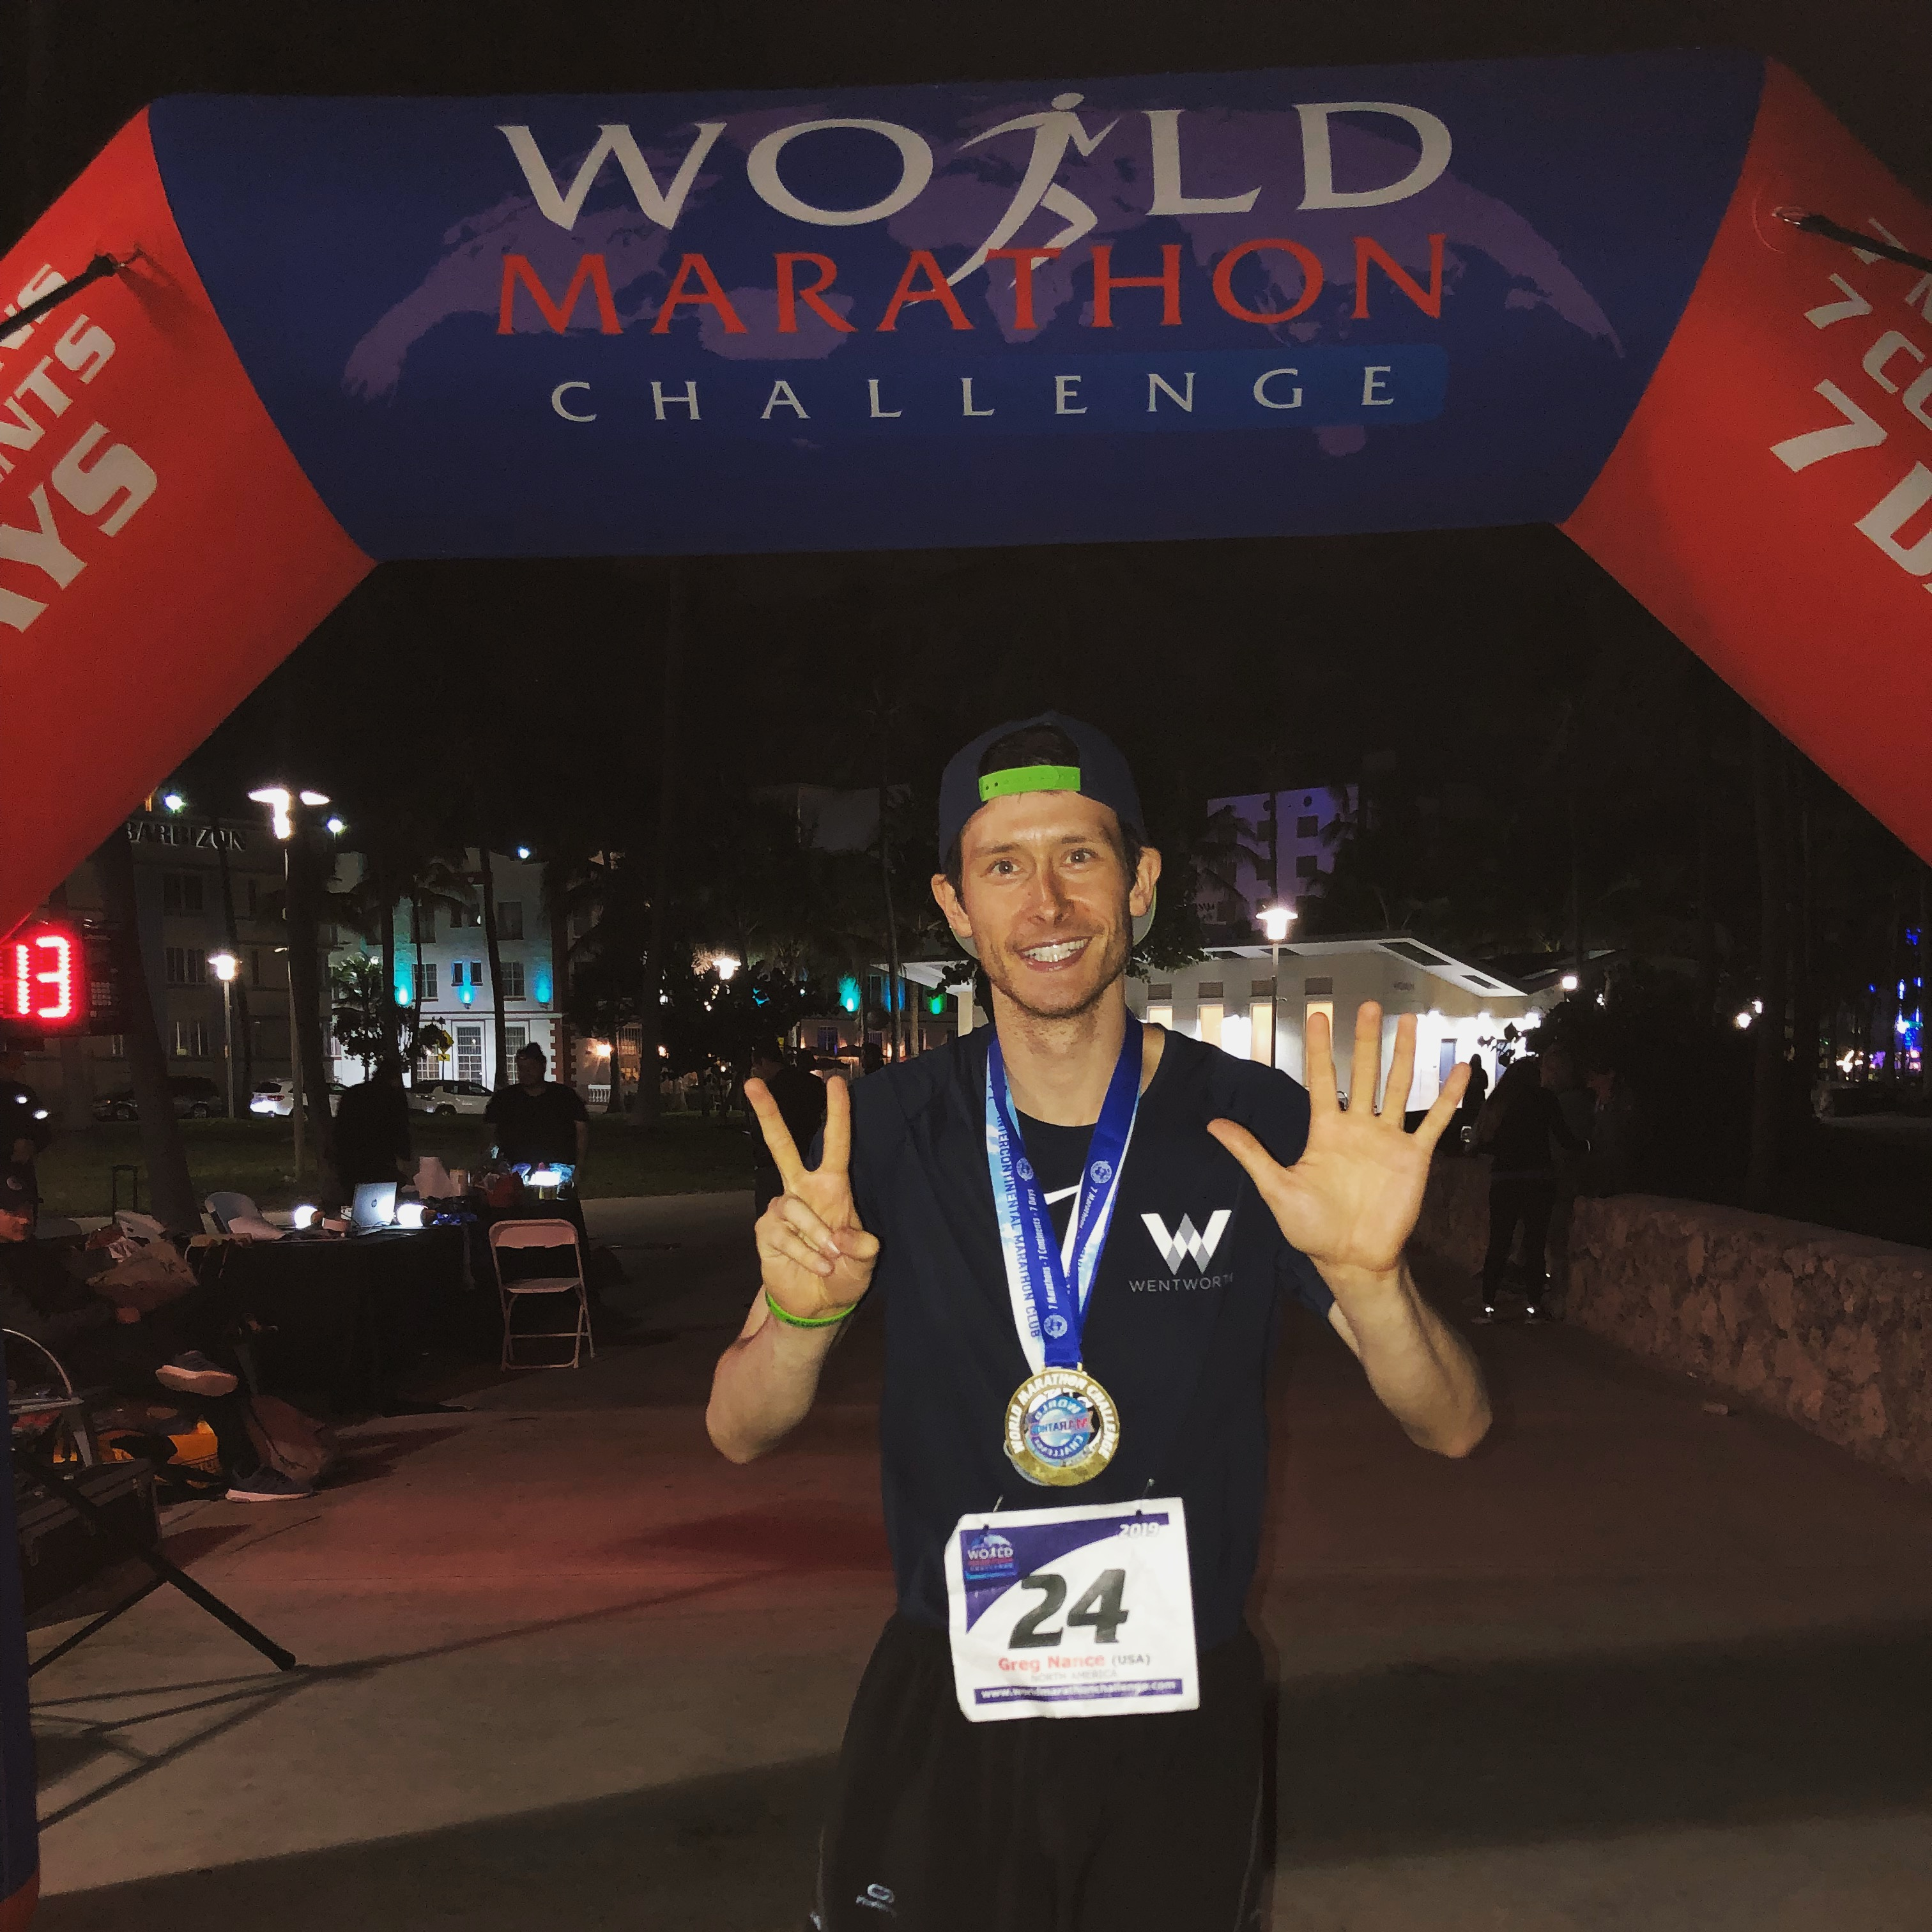 Greg Nance crosses the finish line of the World Marathon Challenge in Miami